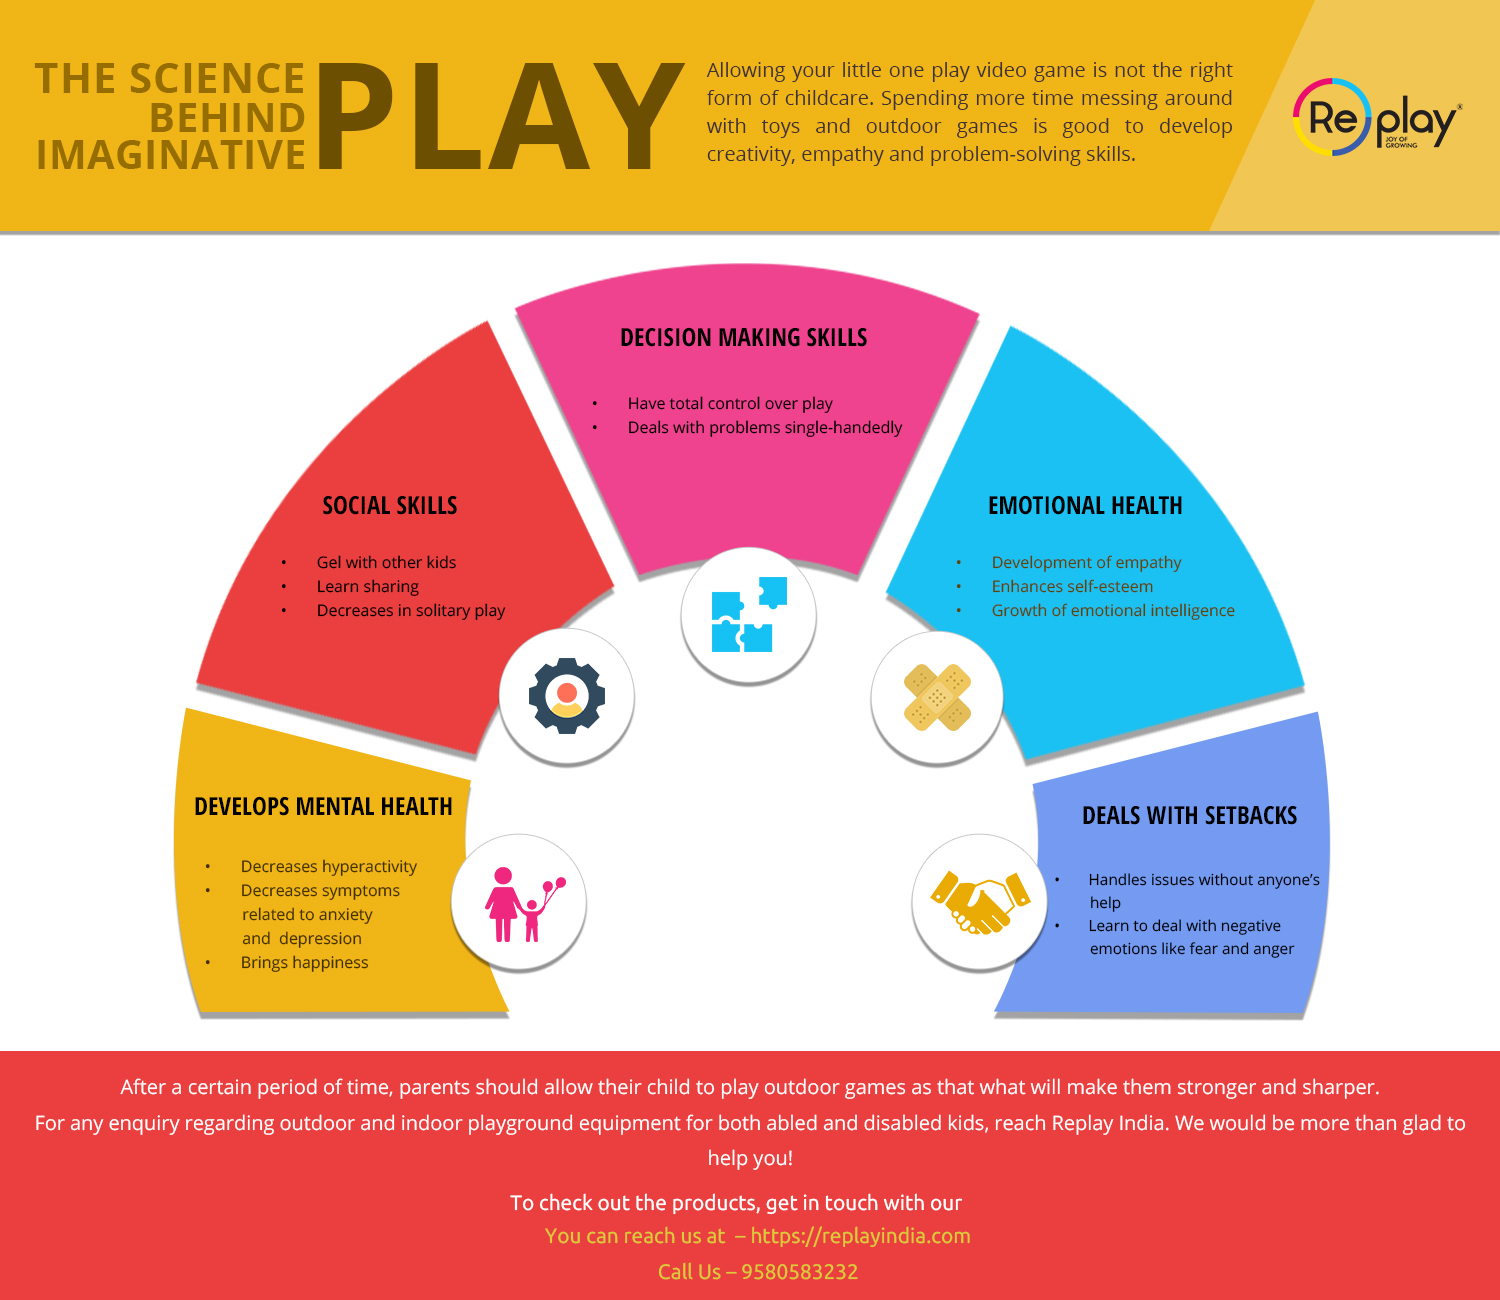 The Science behind Imaginative Play